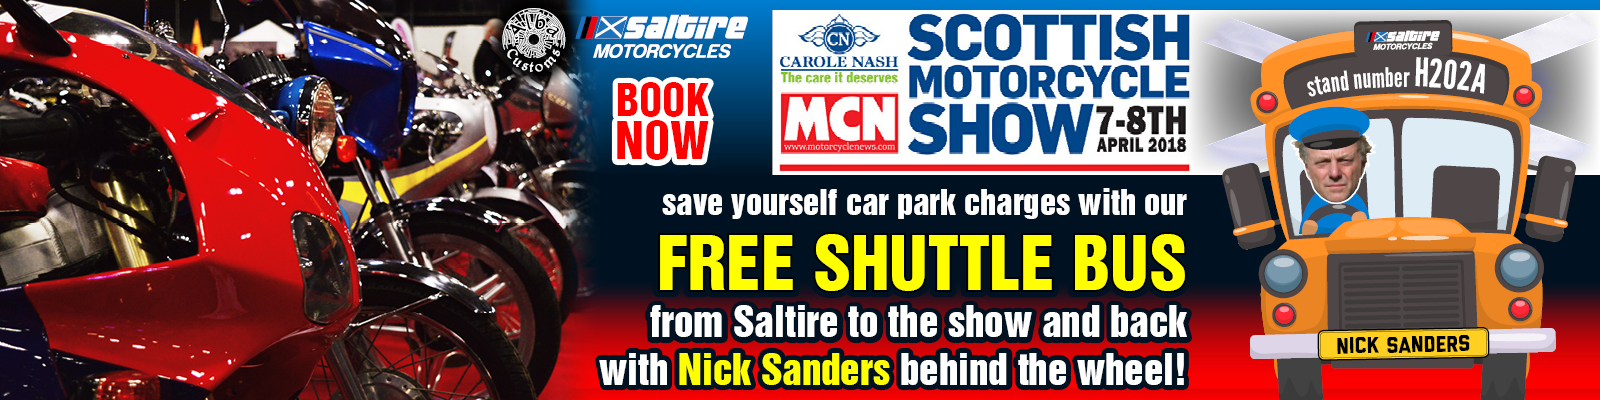 2018 Scottish Motorcycle Show 7-8 April